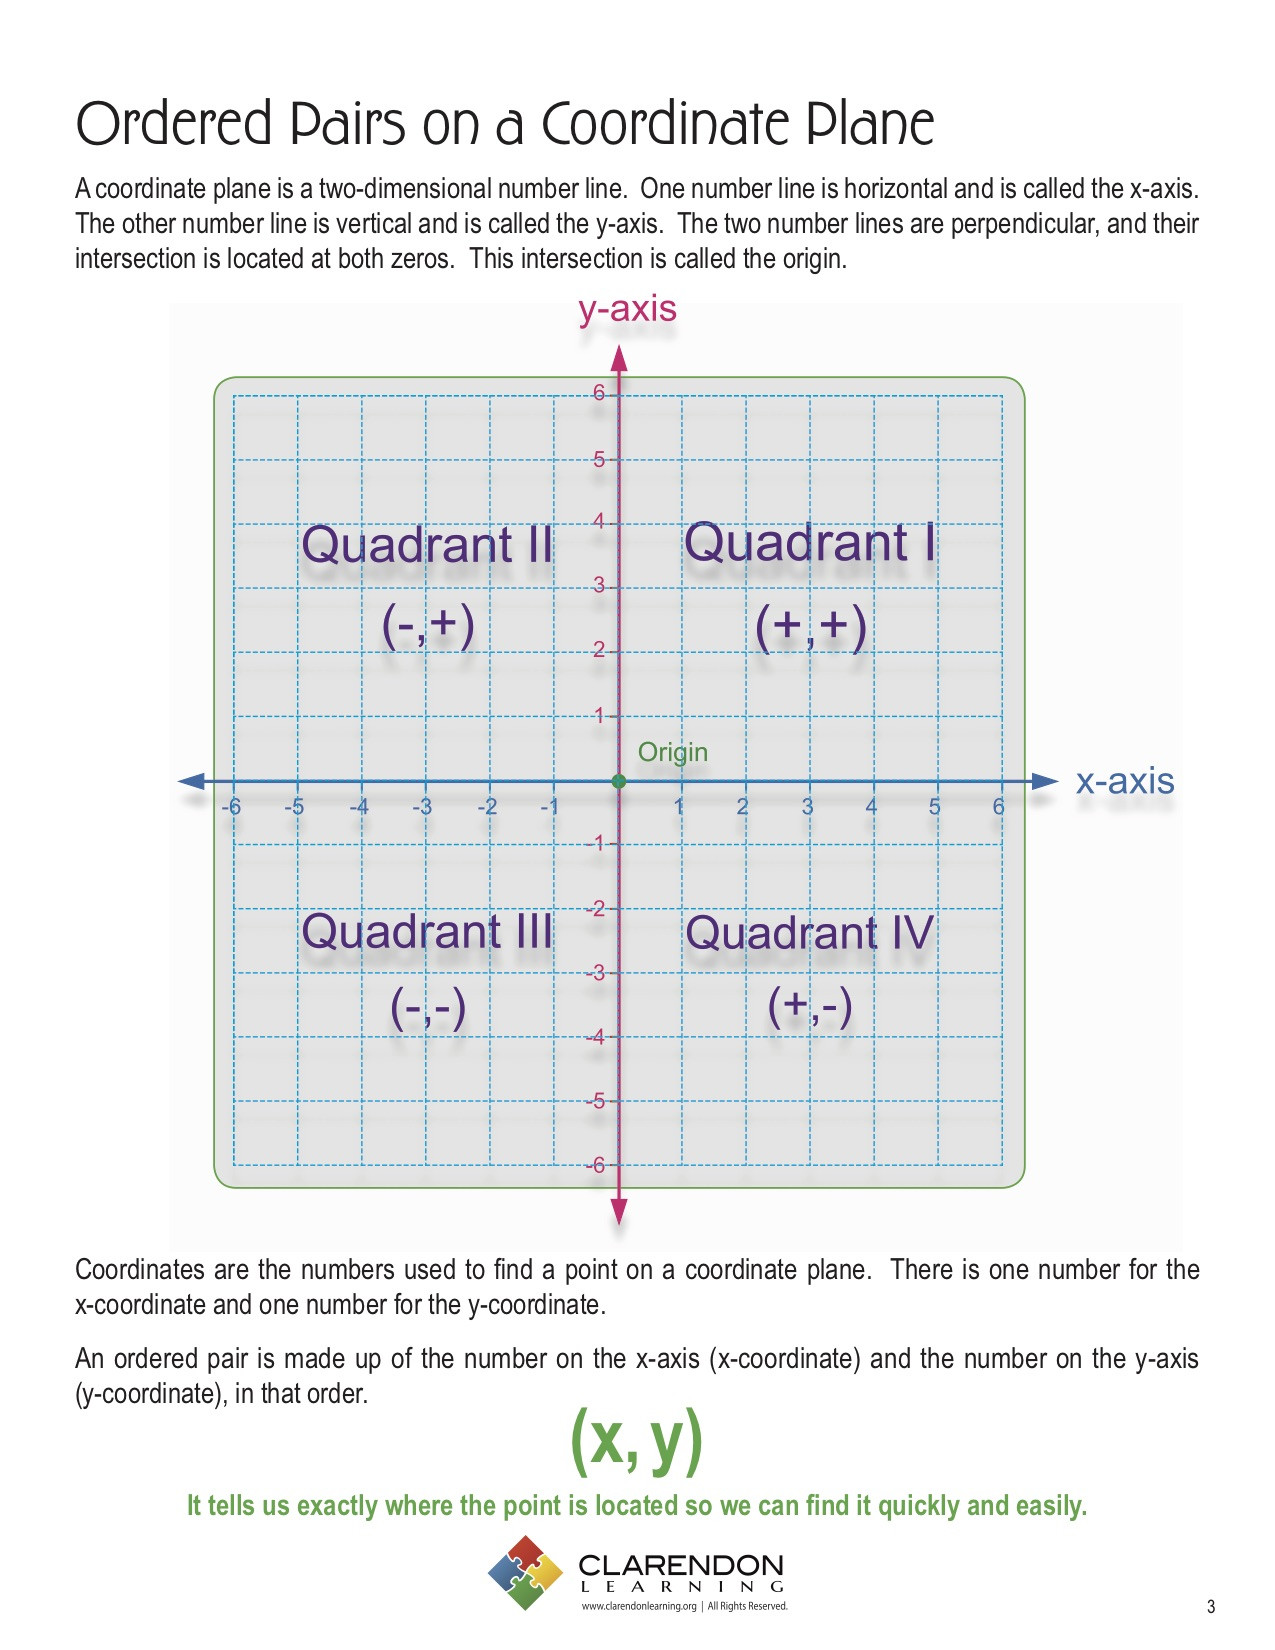 Coordinate Plane Worksheet 5th Grade ordered Pairs On A Coordinate Plane